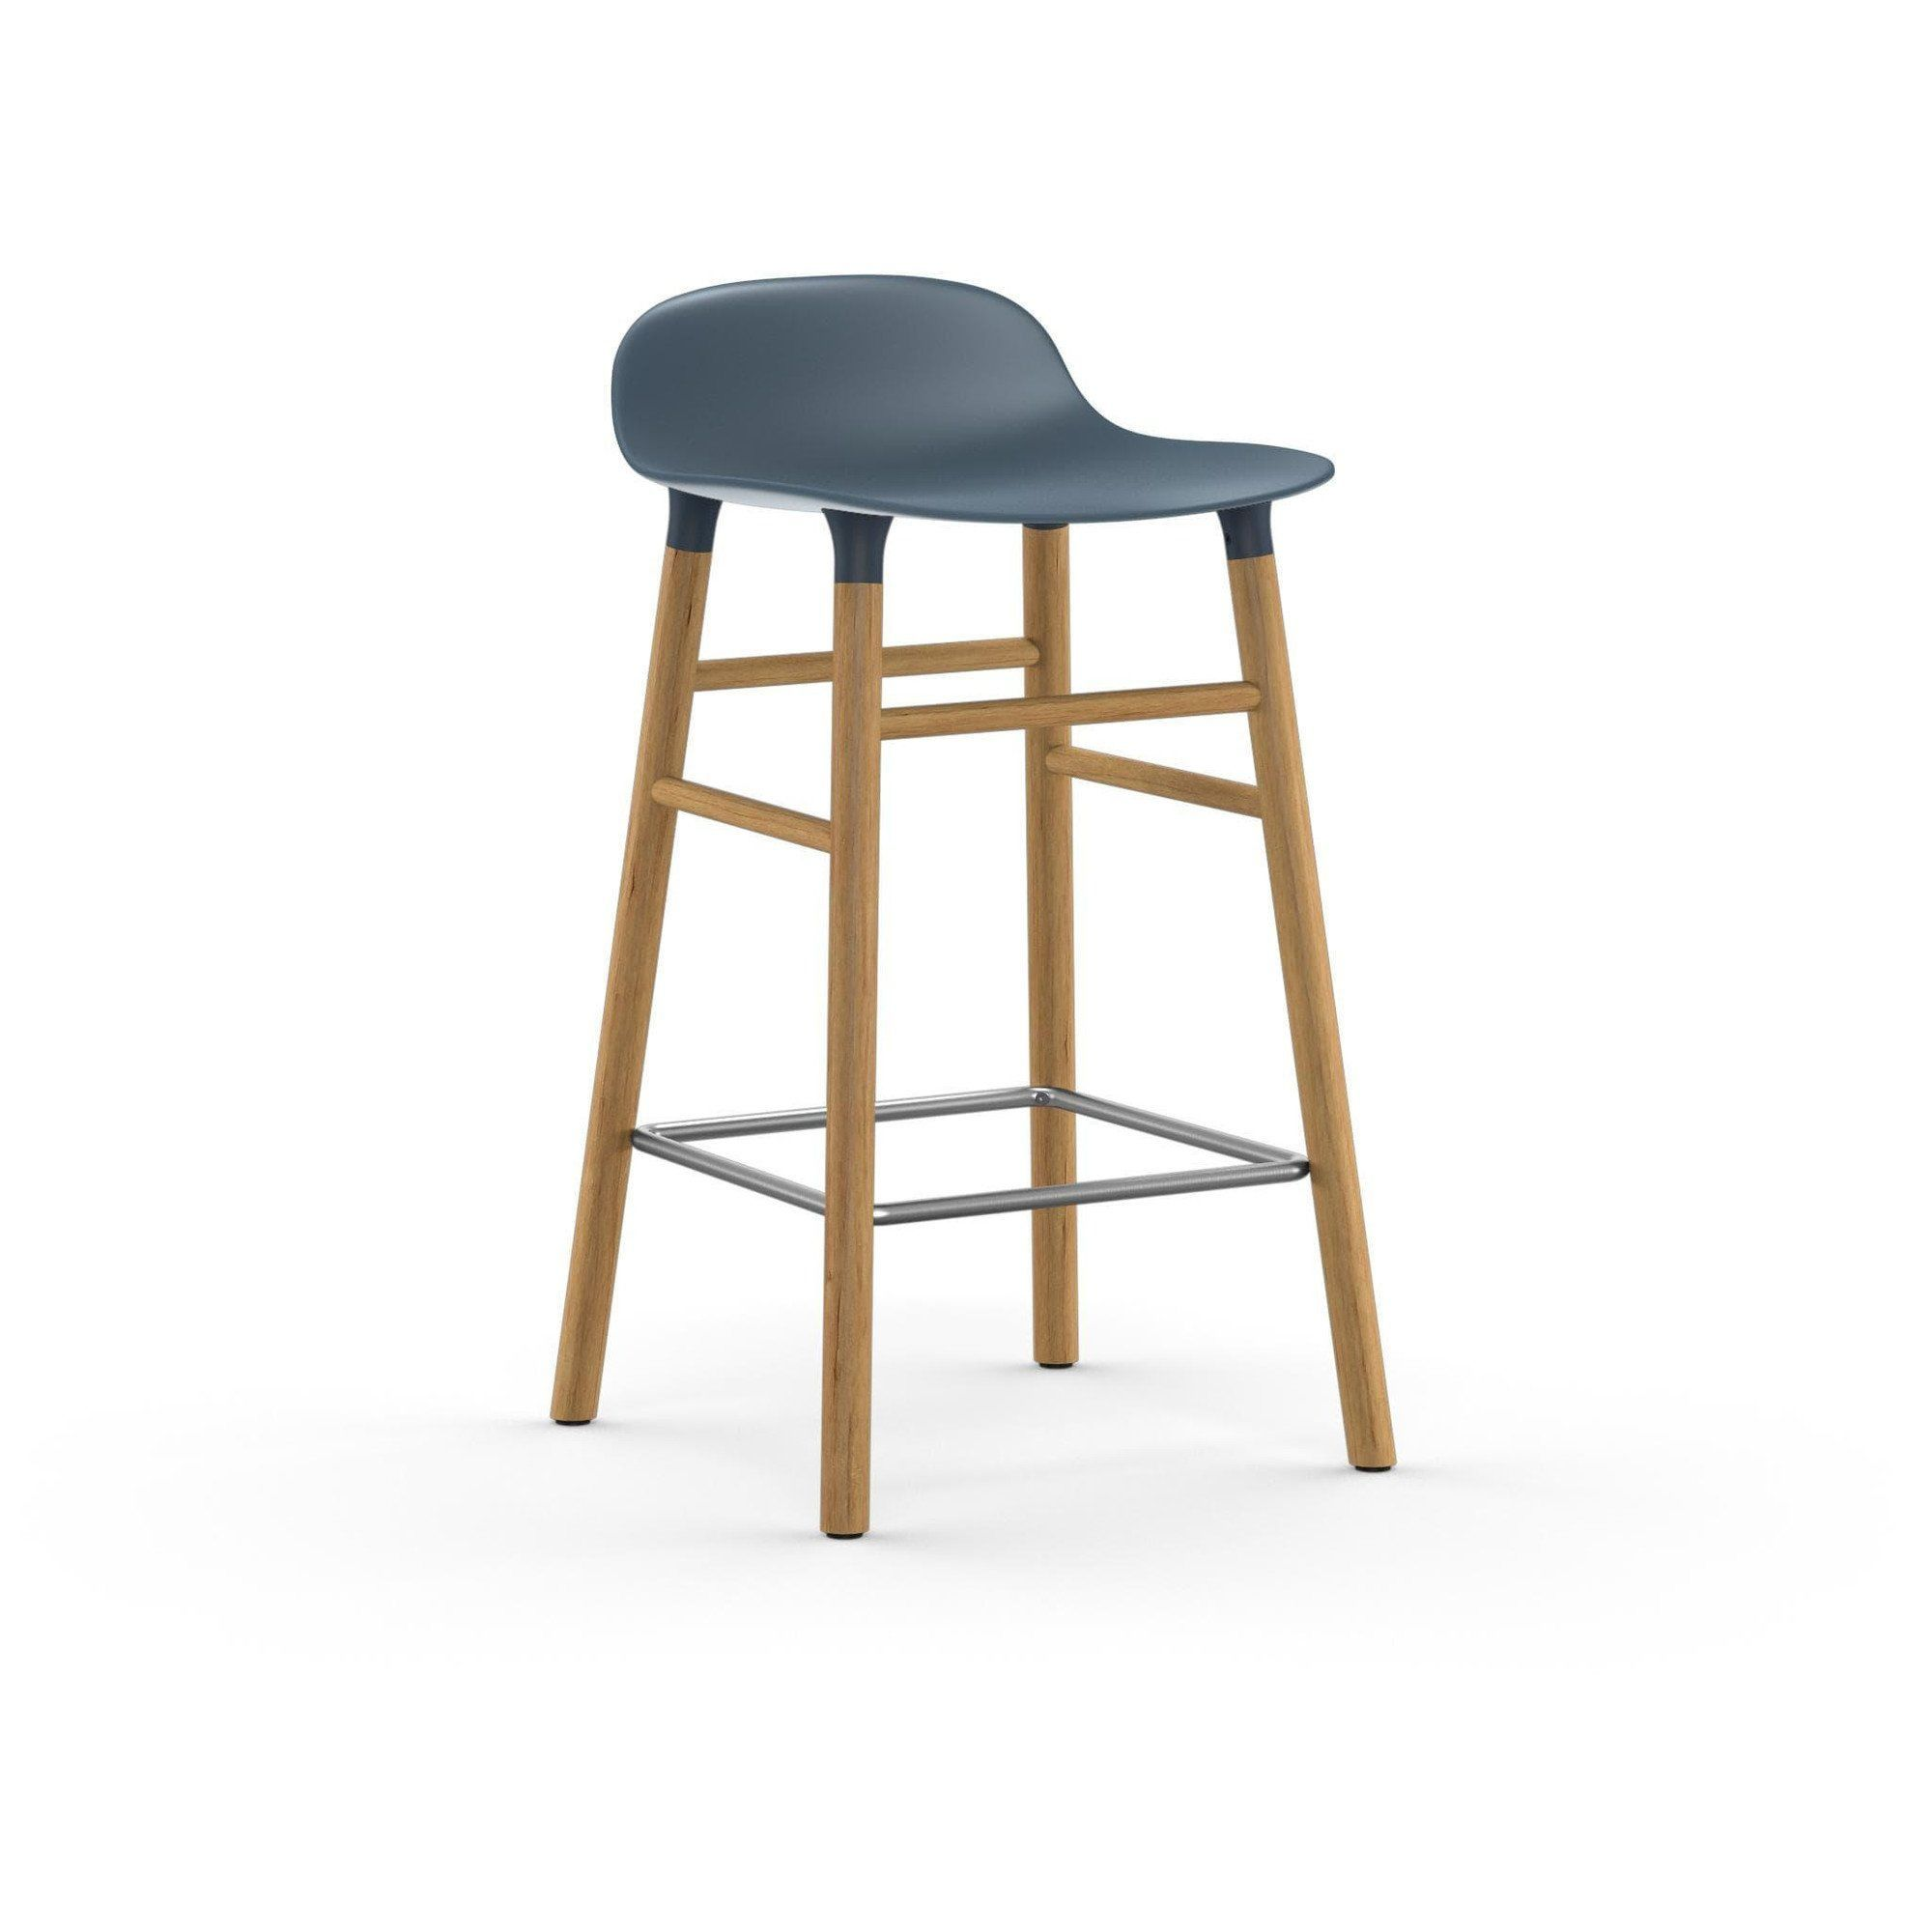 products by stool counter modern stools atlas blue stock morrison alias bar fabric resale in jasper